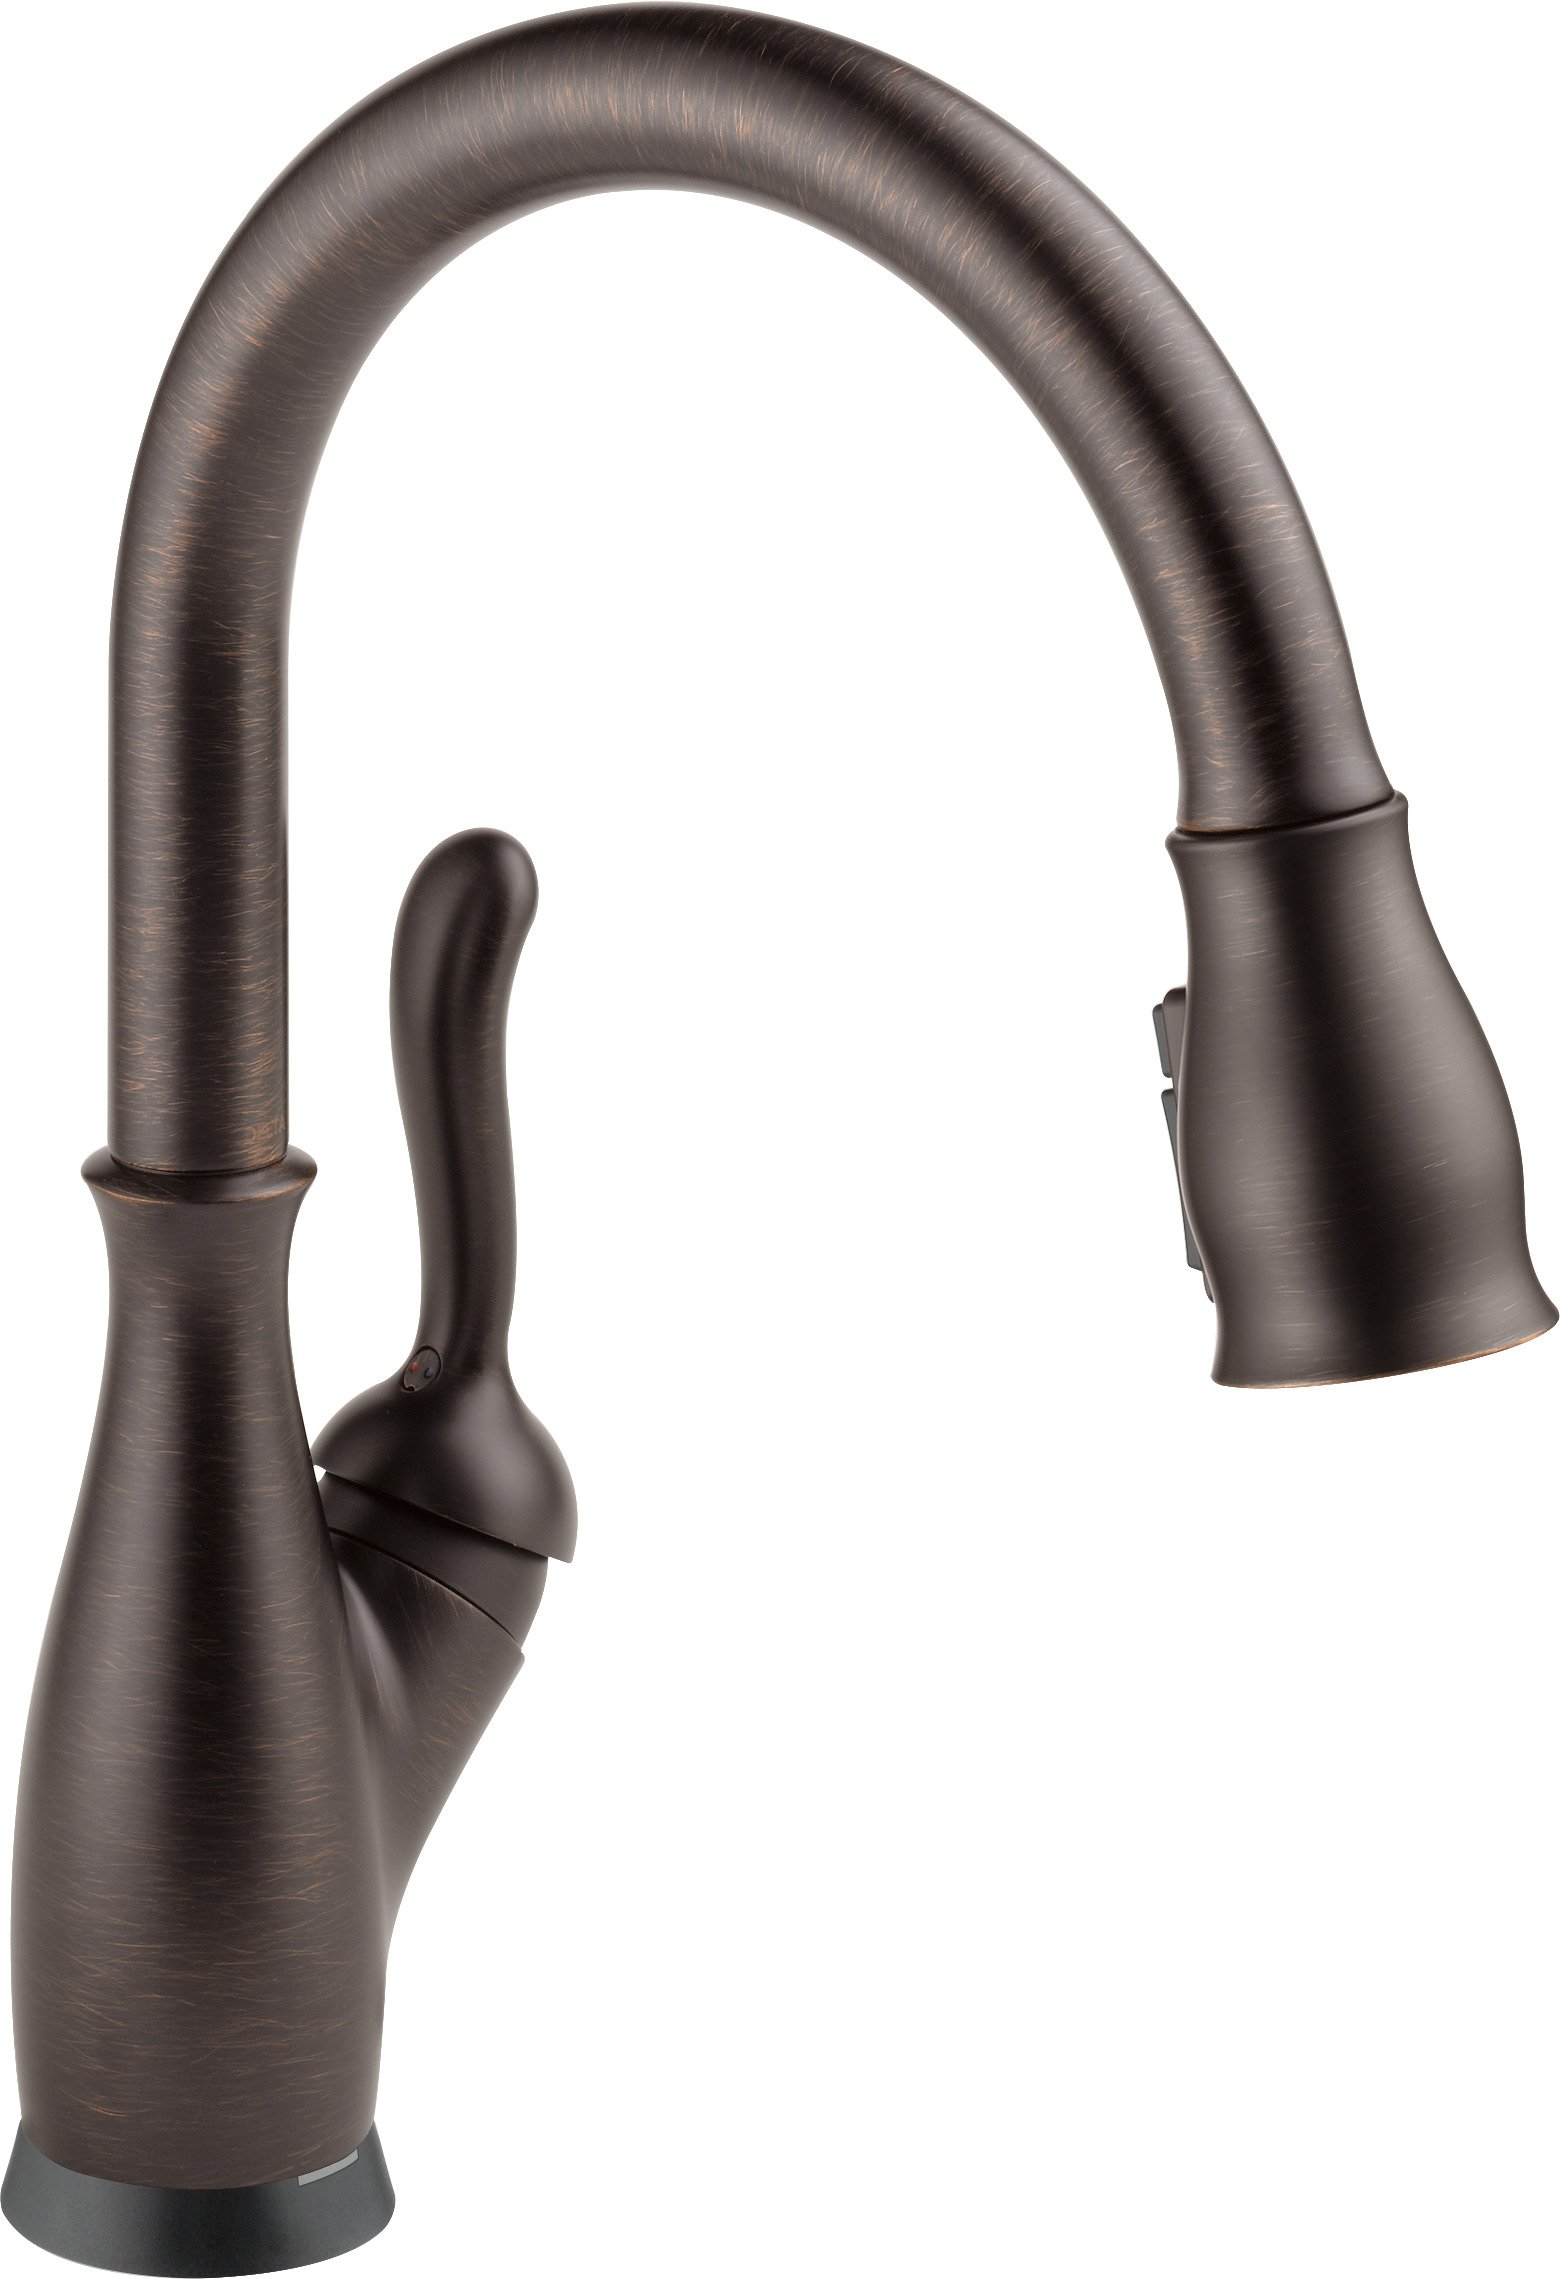 Delta Faucet 9178T-RB-DST Leland, Single Handle Pull-Down Kitchen Faucet with Touch2O Technology and Magnetic Docking, Venetian Bronze by DELTA FAUCET